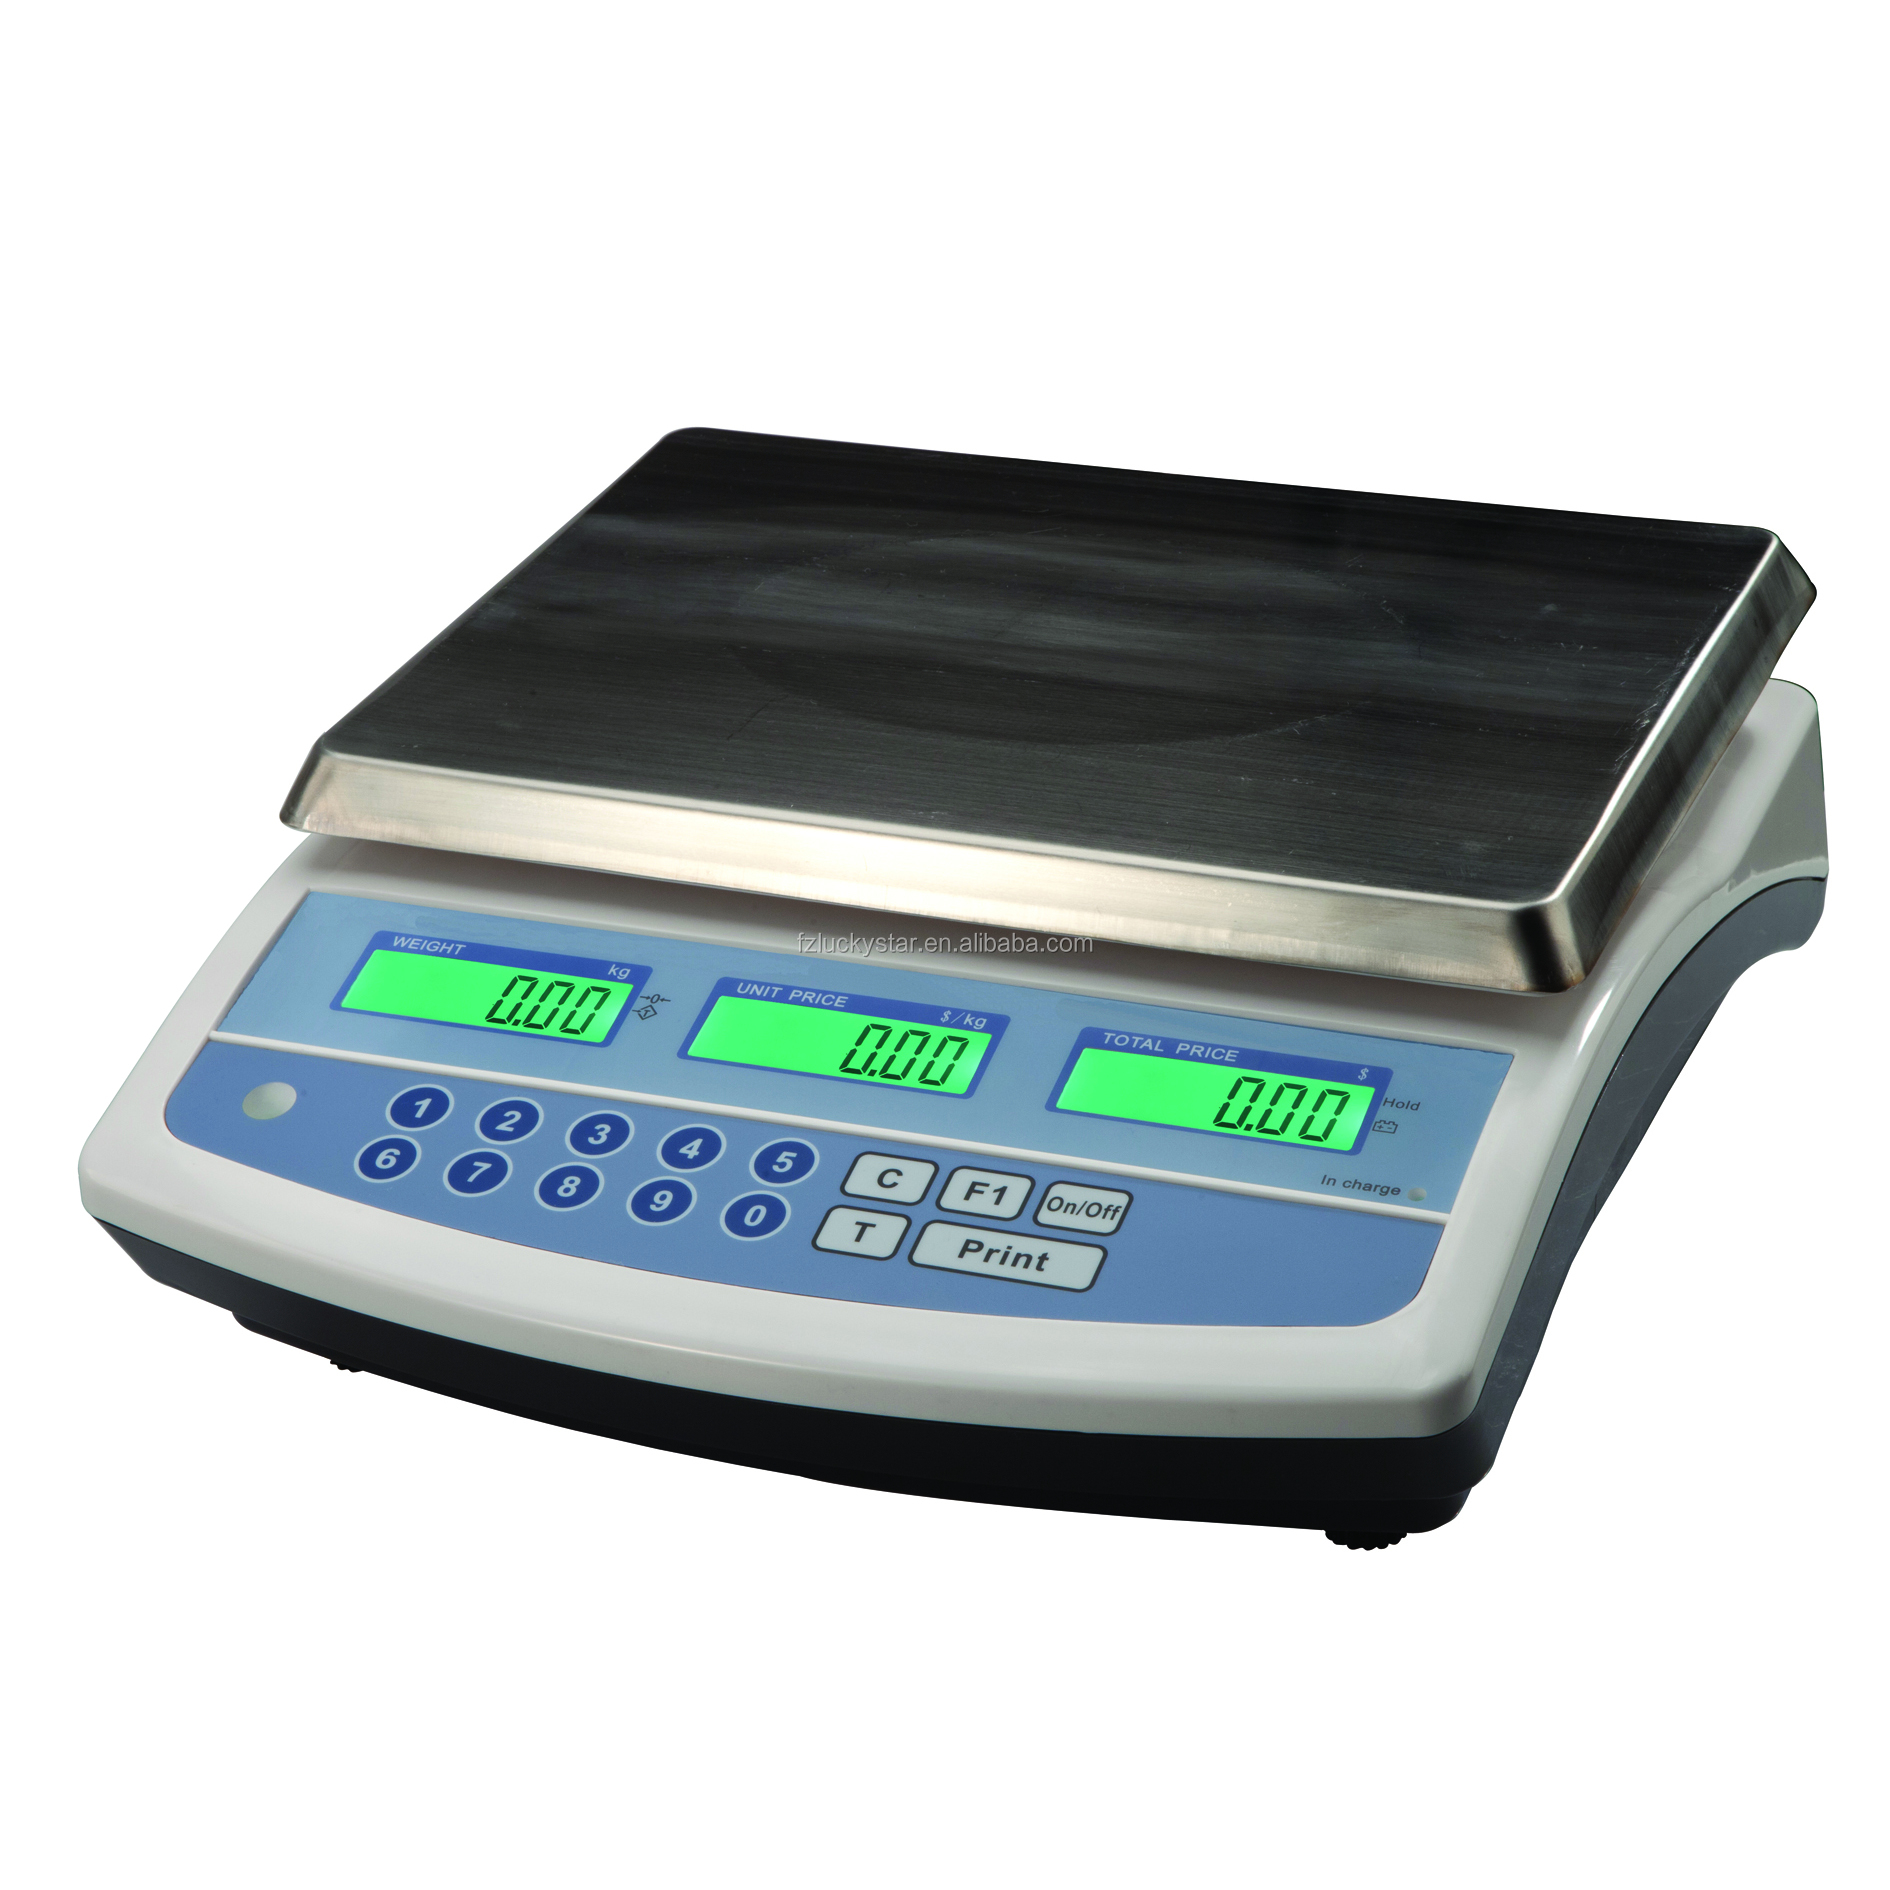 Acs-30 Price Computing Scale, Acs-30 Price Computing Scale Suppliers ...